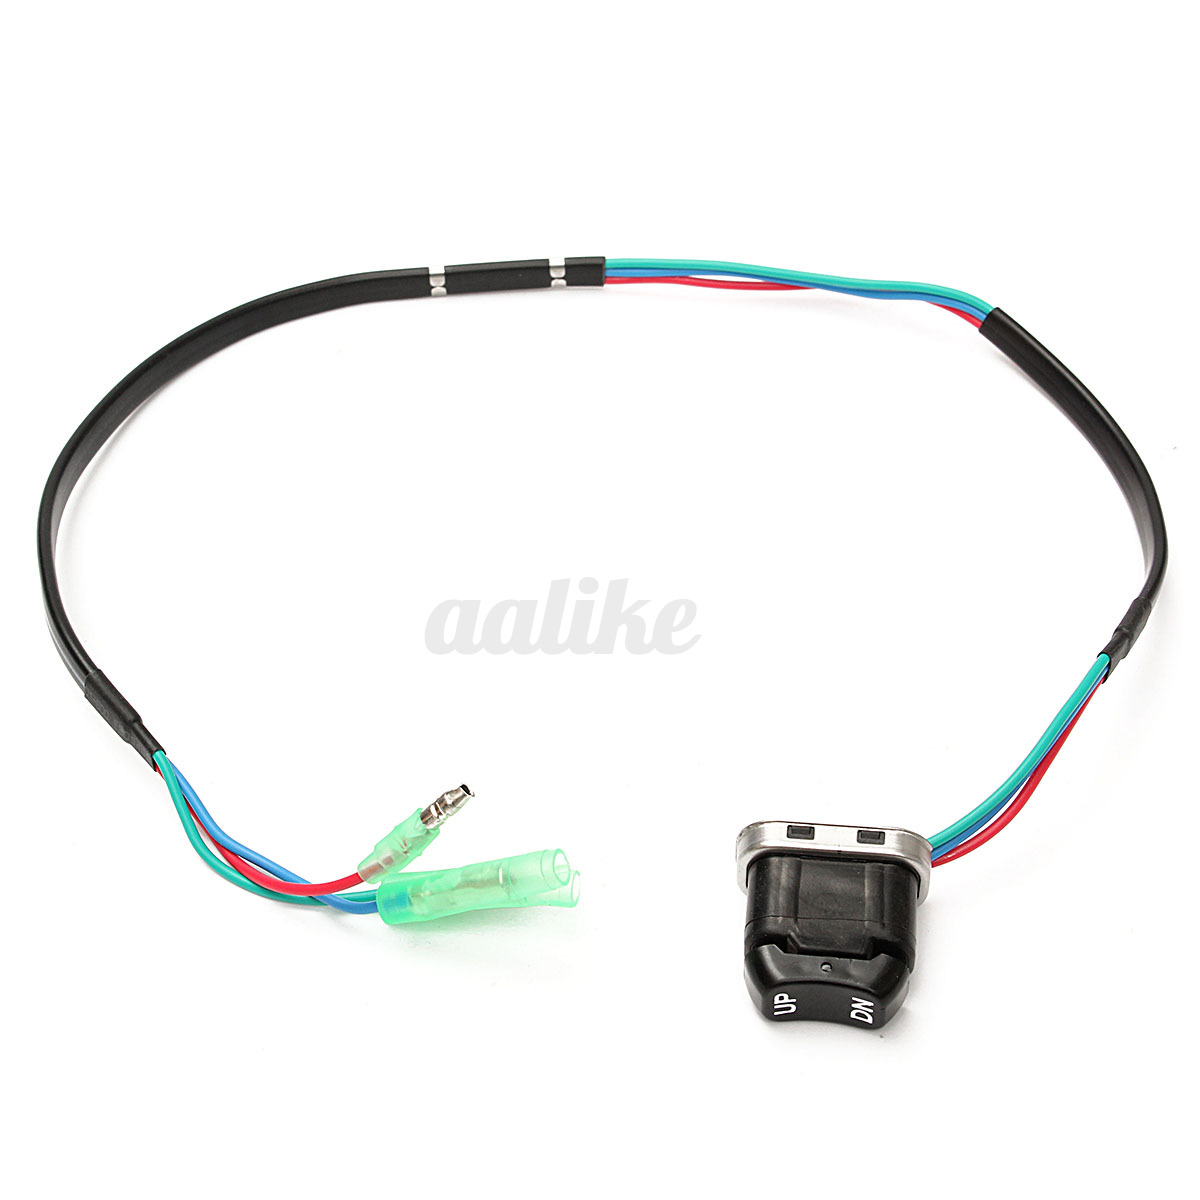 Trim Amp Tilt Switch Assy 703 02 00 For Yamaha 703